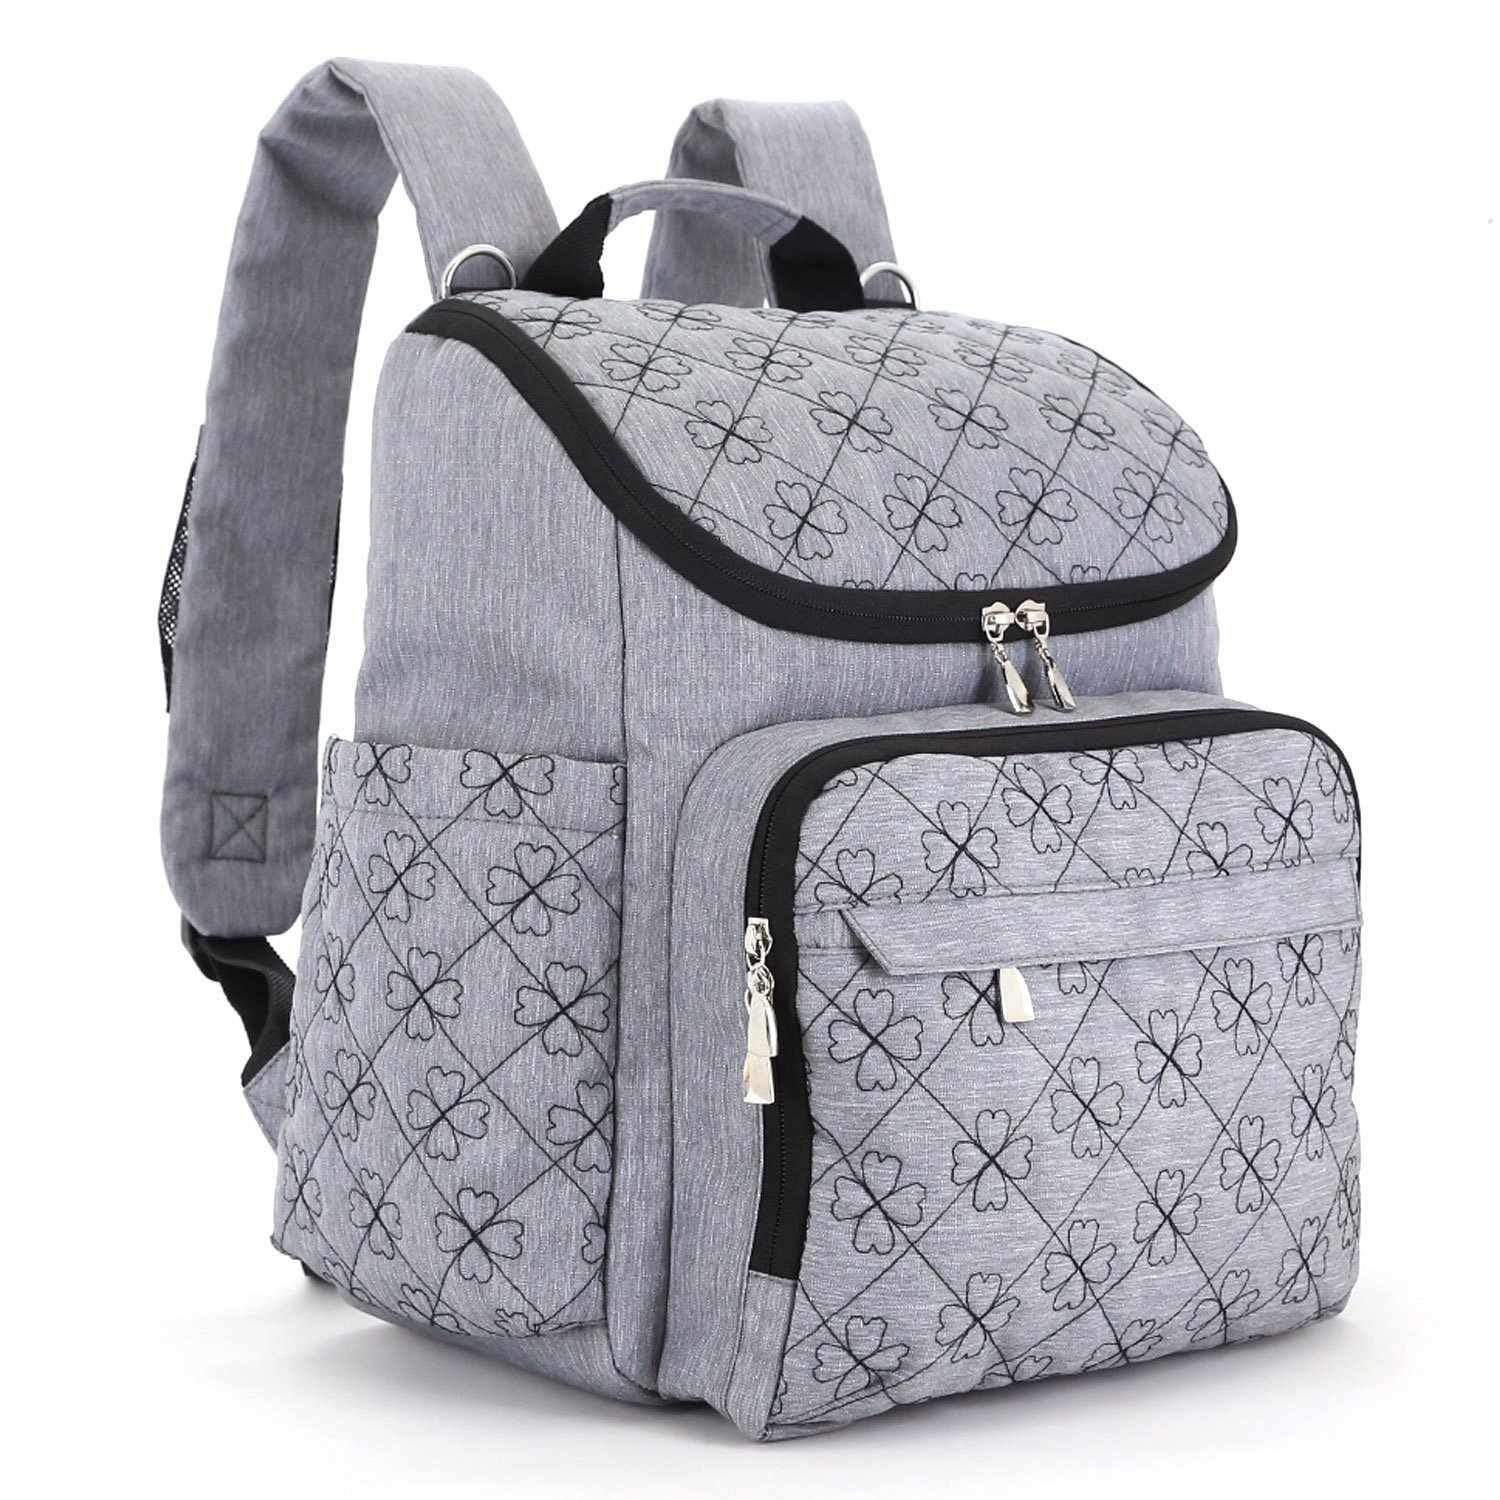 diaper bag backpack with baby stroller straps by